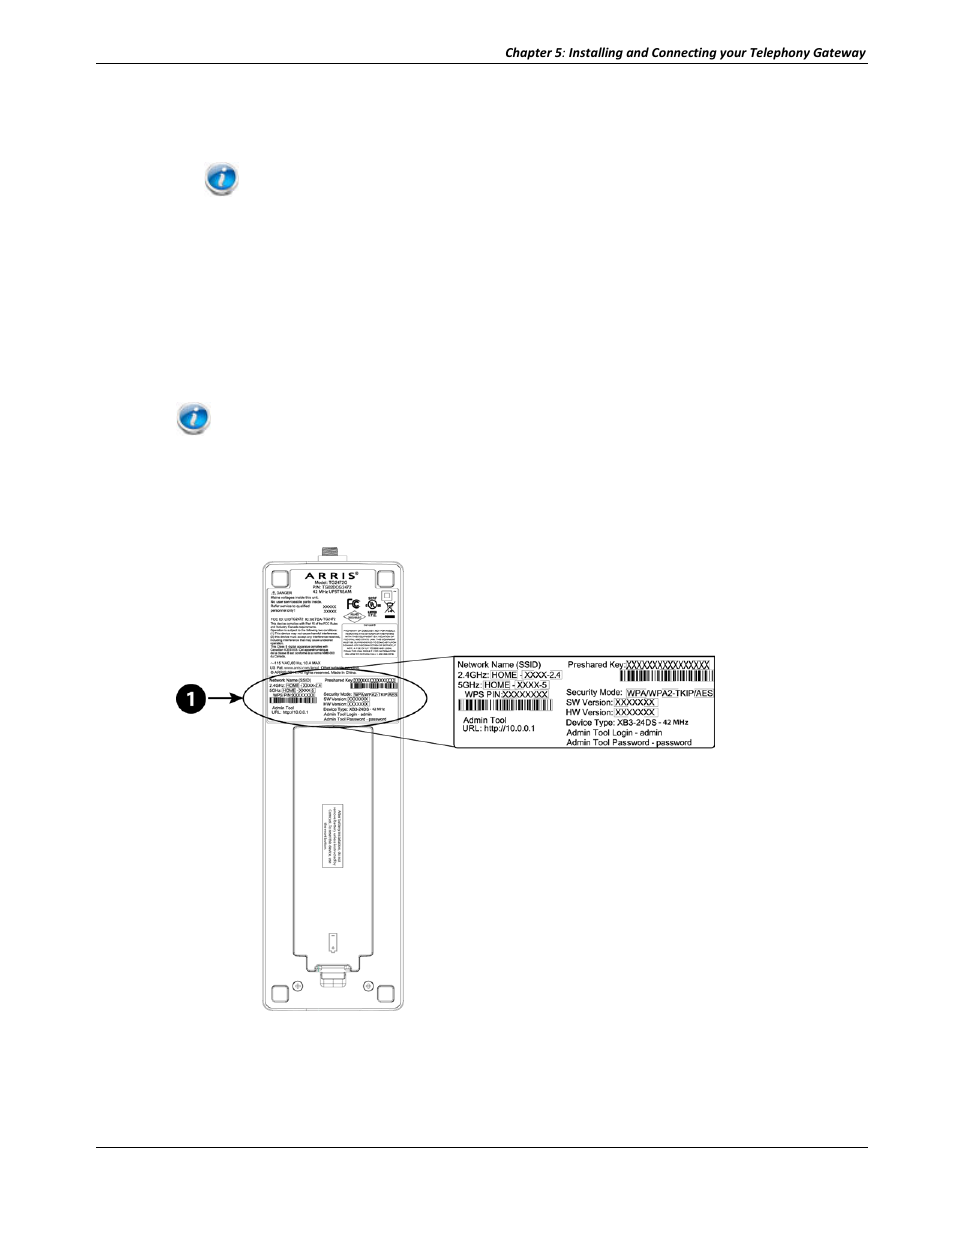 Configuring your wireless connection | ARRIS TG2472G-NA User Guide User  Manual | Page 26 / 44